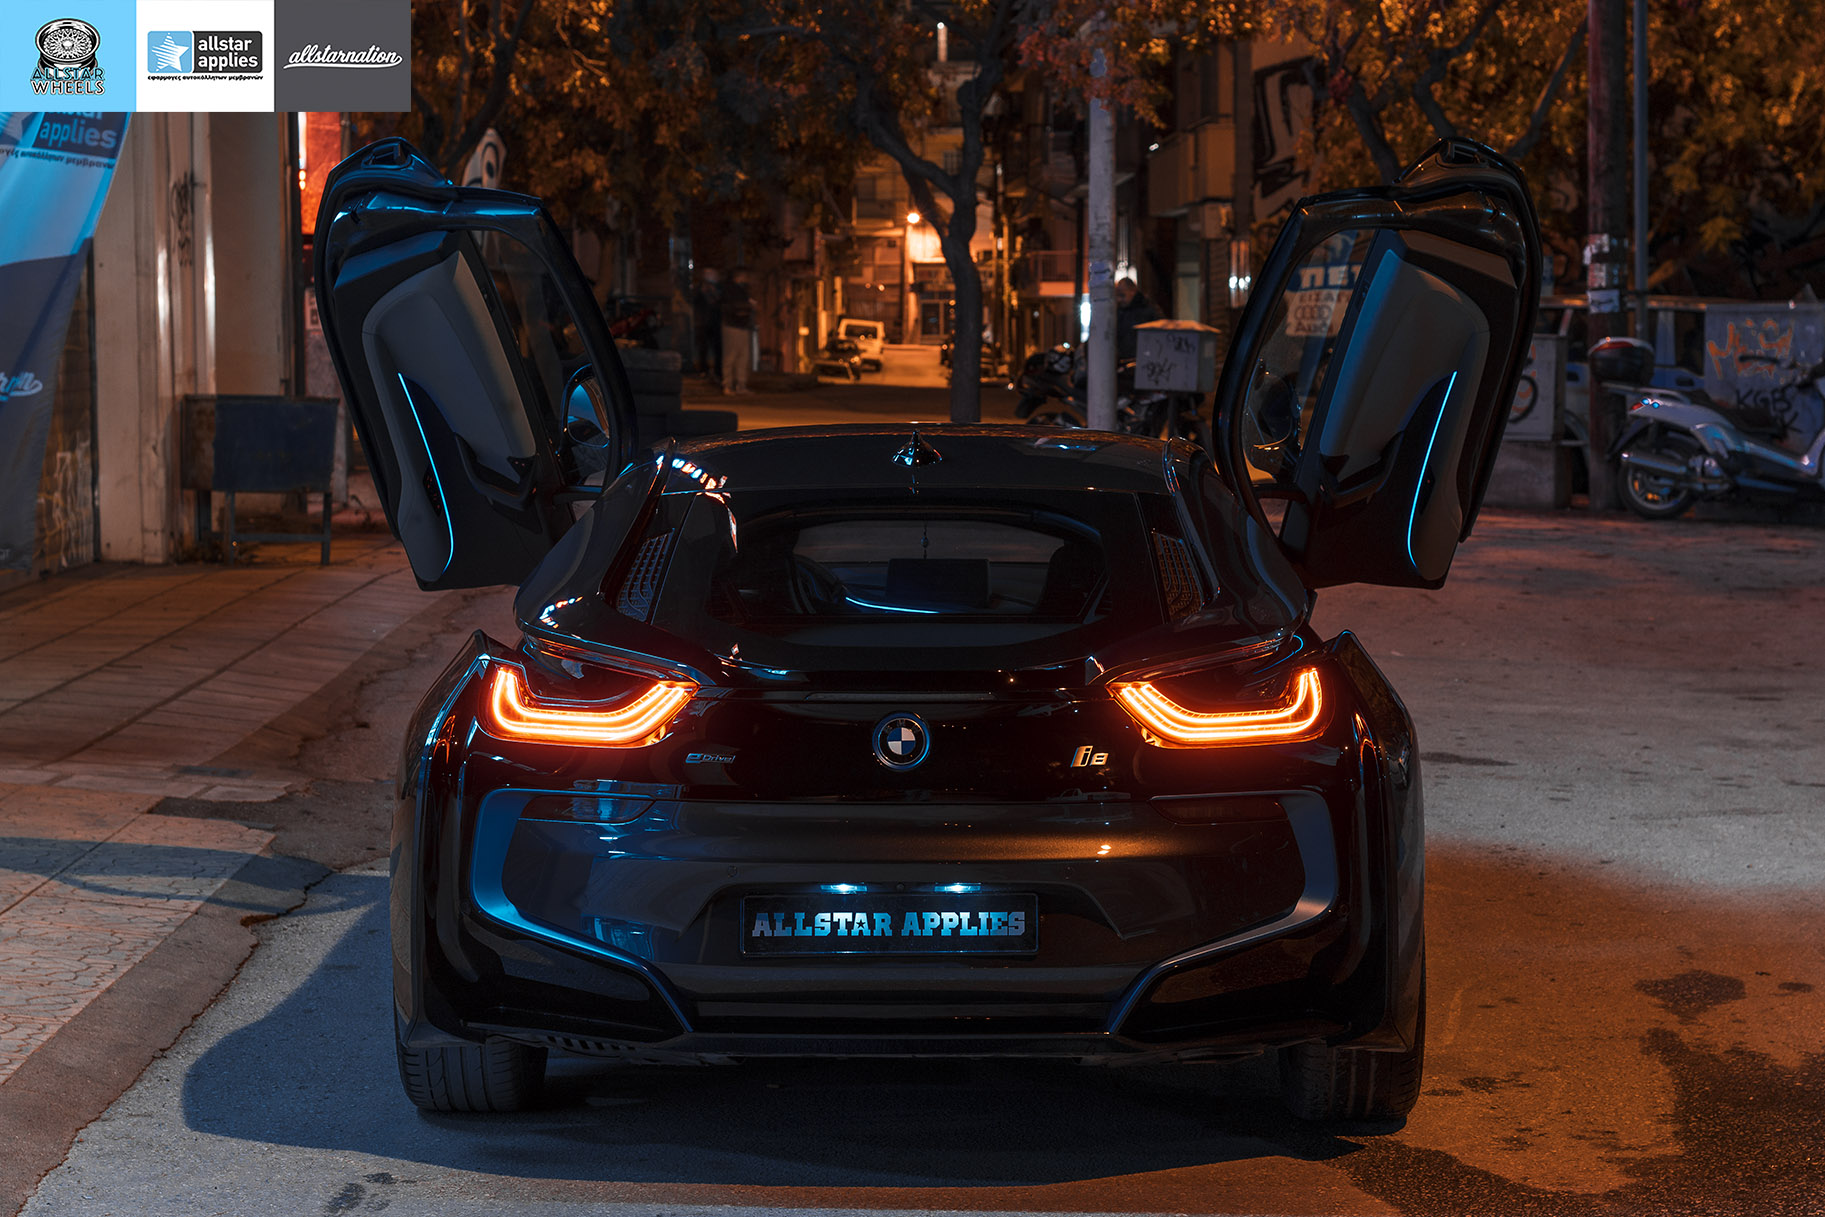 Car wrapping BMW i8 by allstar applies στη θεσσαλονίκη